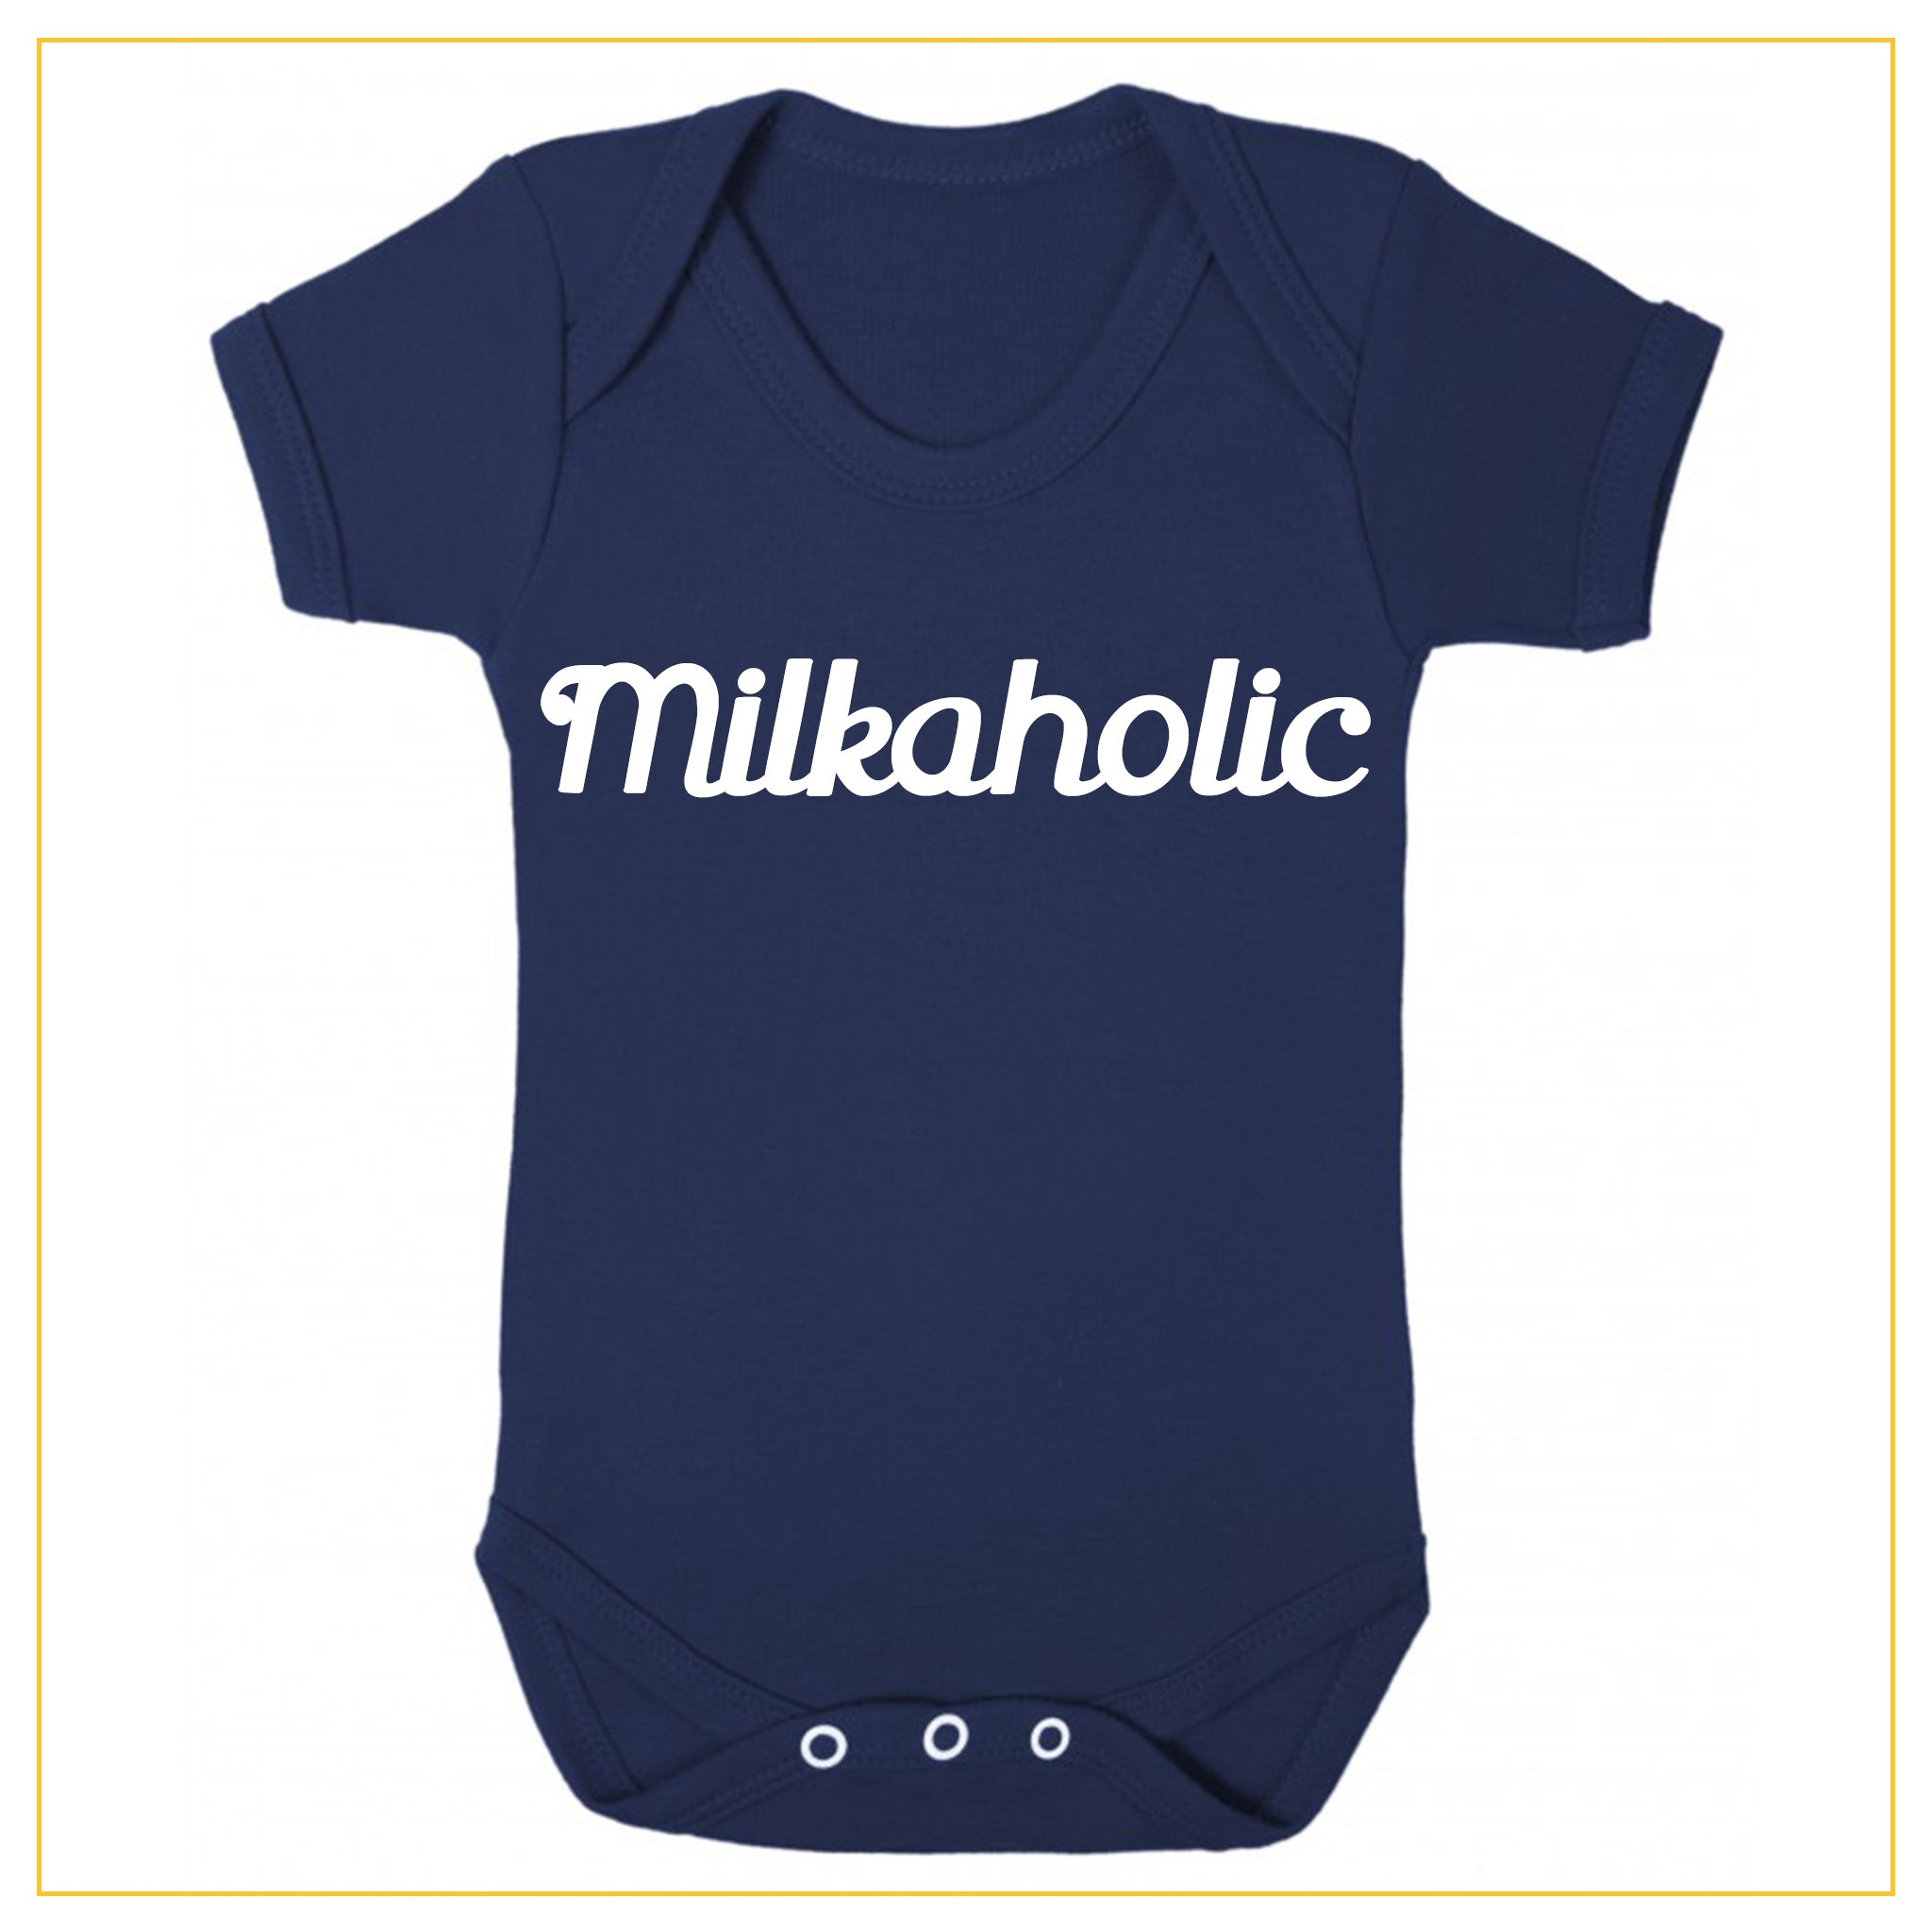 milkaholic novelty baby onesie in navy blue